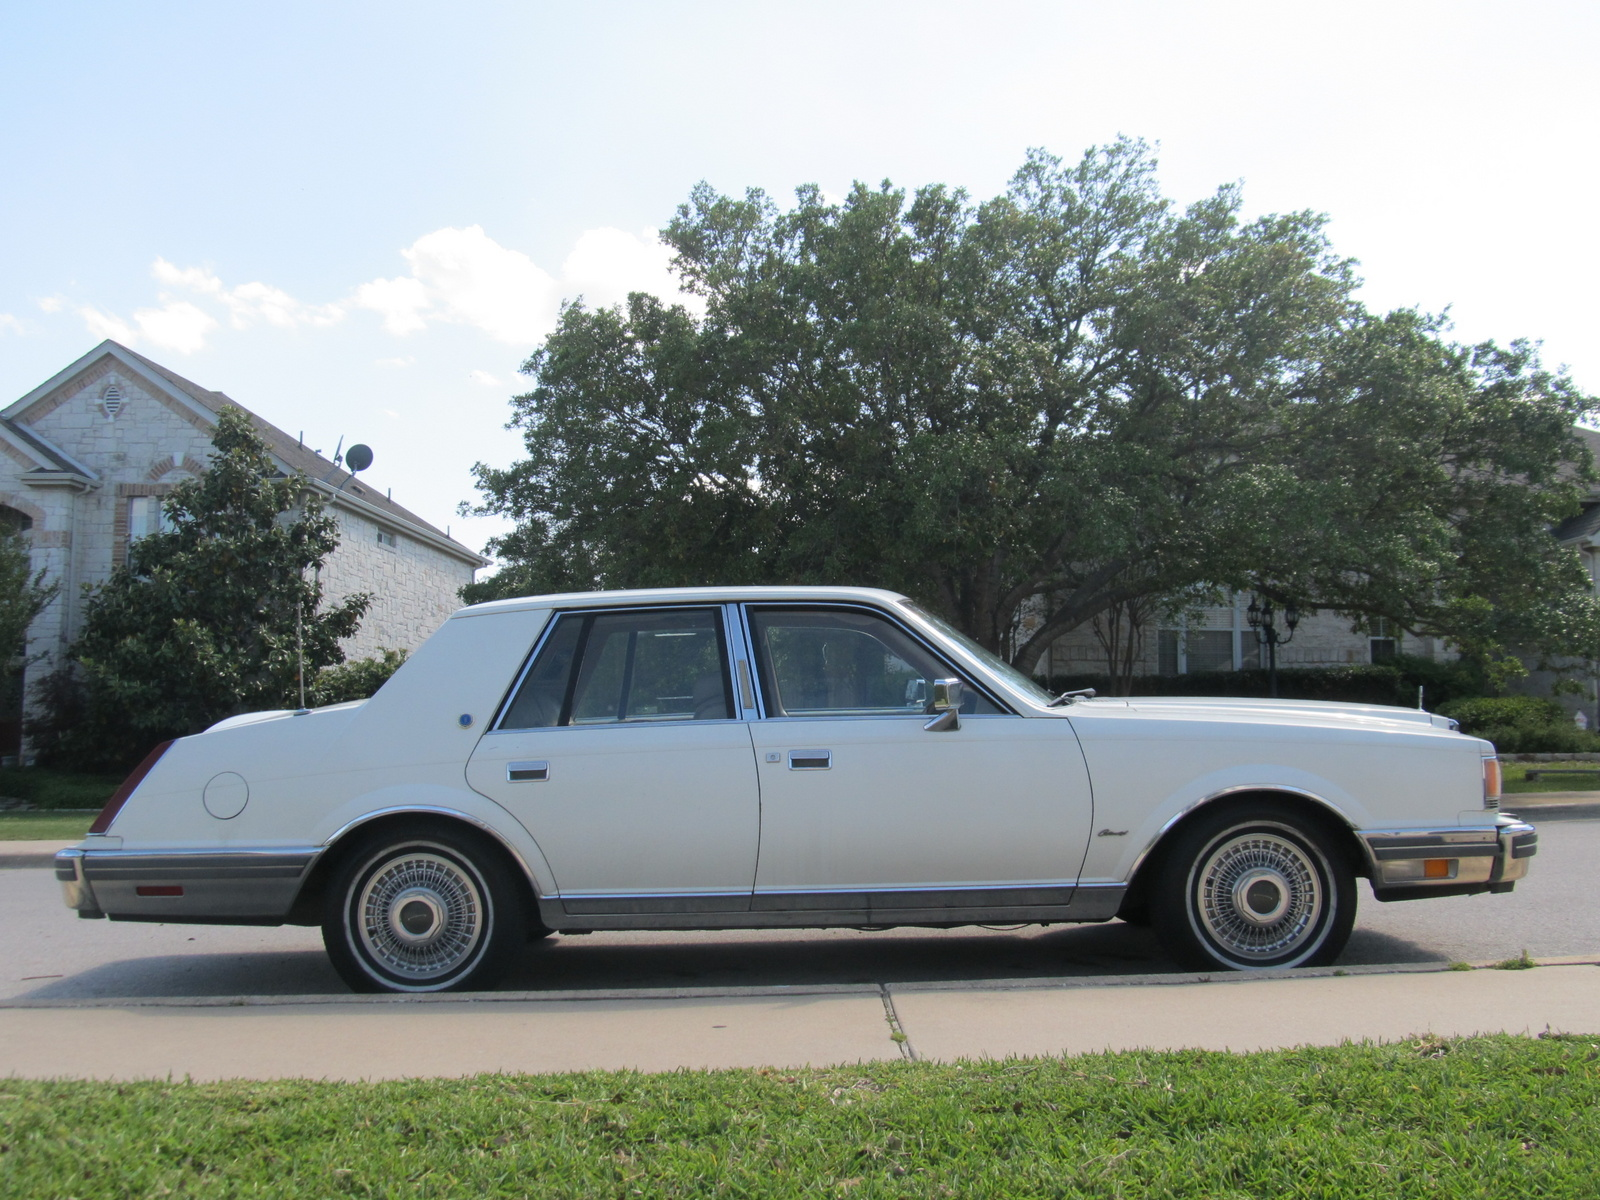 5085055098 as well 1968 Lincoln Continental Mark III classic luxury g together with 676182 1991 Mustang Gt Fuel Pump Will Not Turn On Or Prime together with 1972 Amc Javelin Sst 2 Door Coupe further Carros Da Disney Pixar. on 1970 lincoln town car